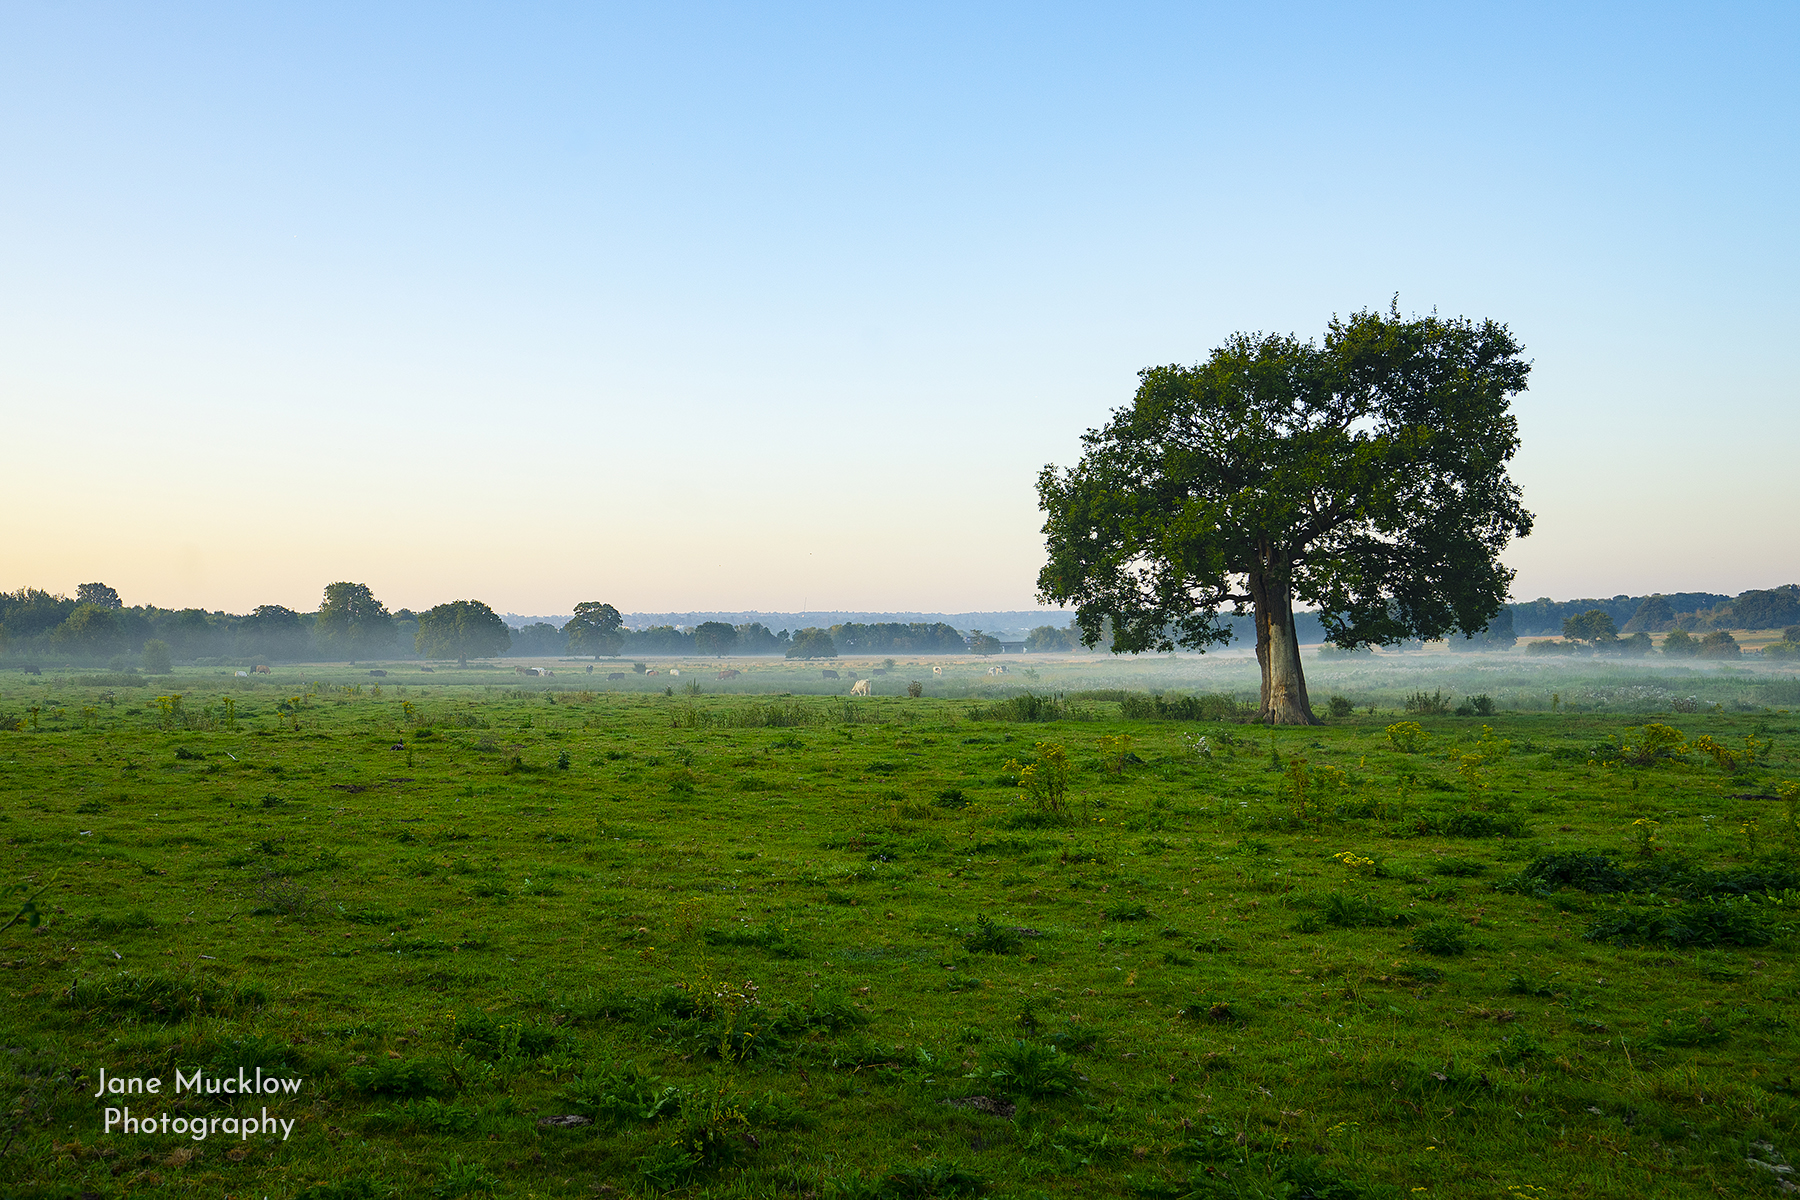 Photograph by Jane Mucklow of the Lone Tree with a misty sunrise, view fromOtford towards Sevenoaks, Kent.